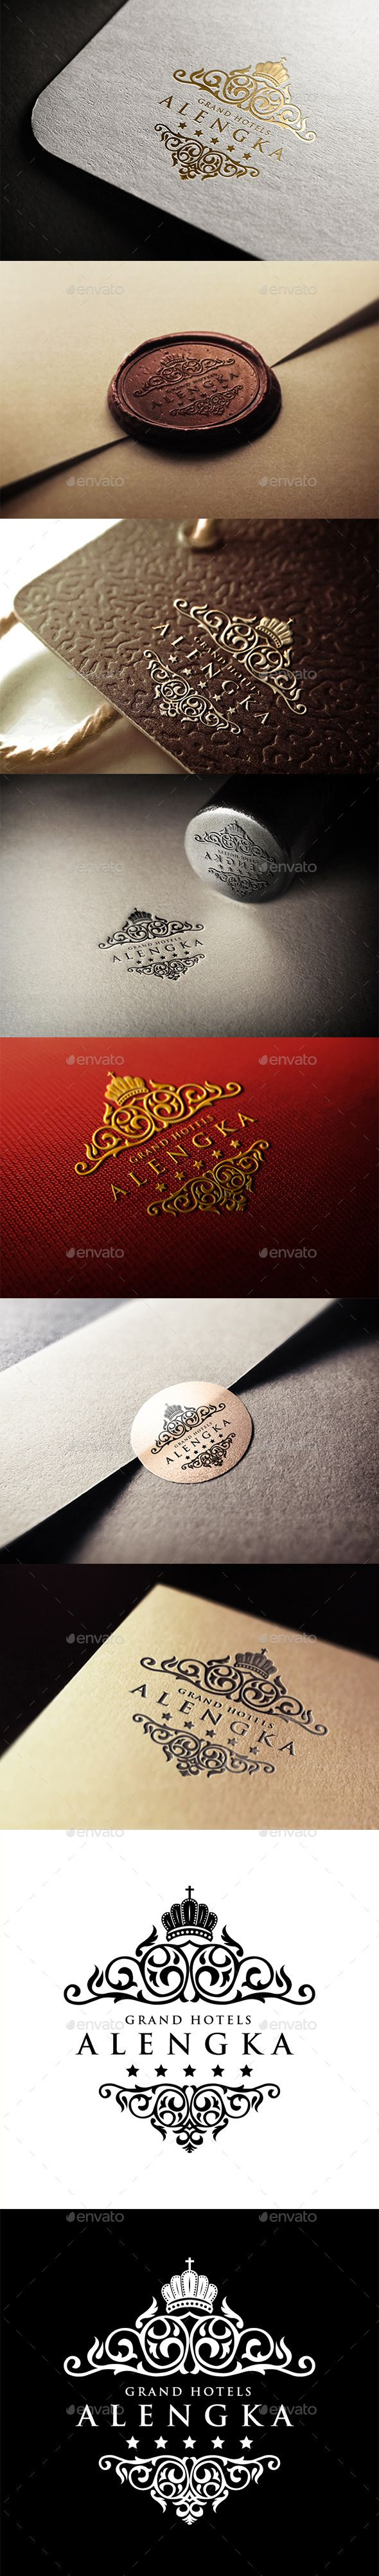 Alengka Hotels Logo Template #design #logotype Download: http://graphicriver.net/item/alengka-hotels-logo/11262560?ref=ksioks